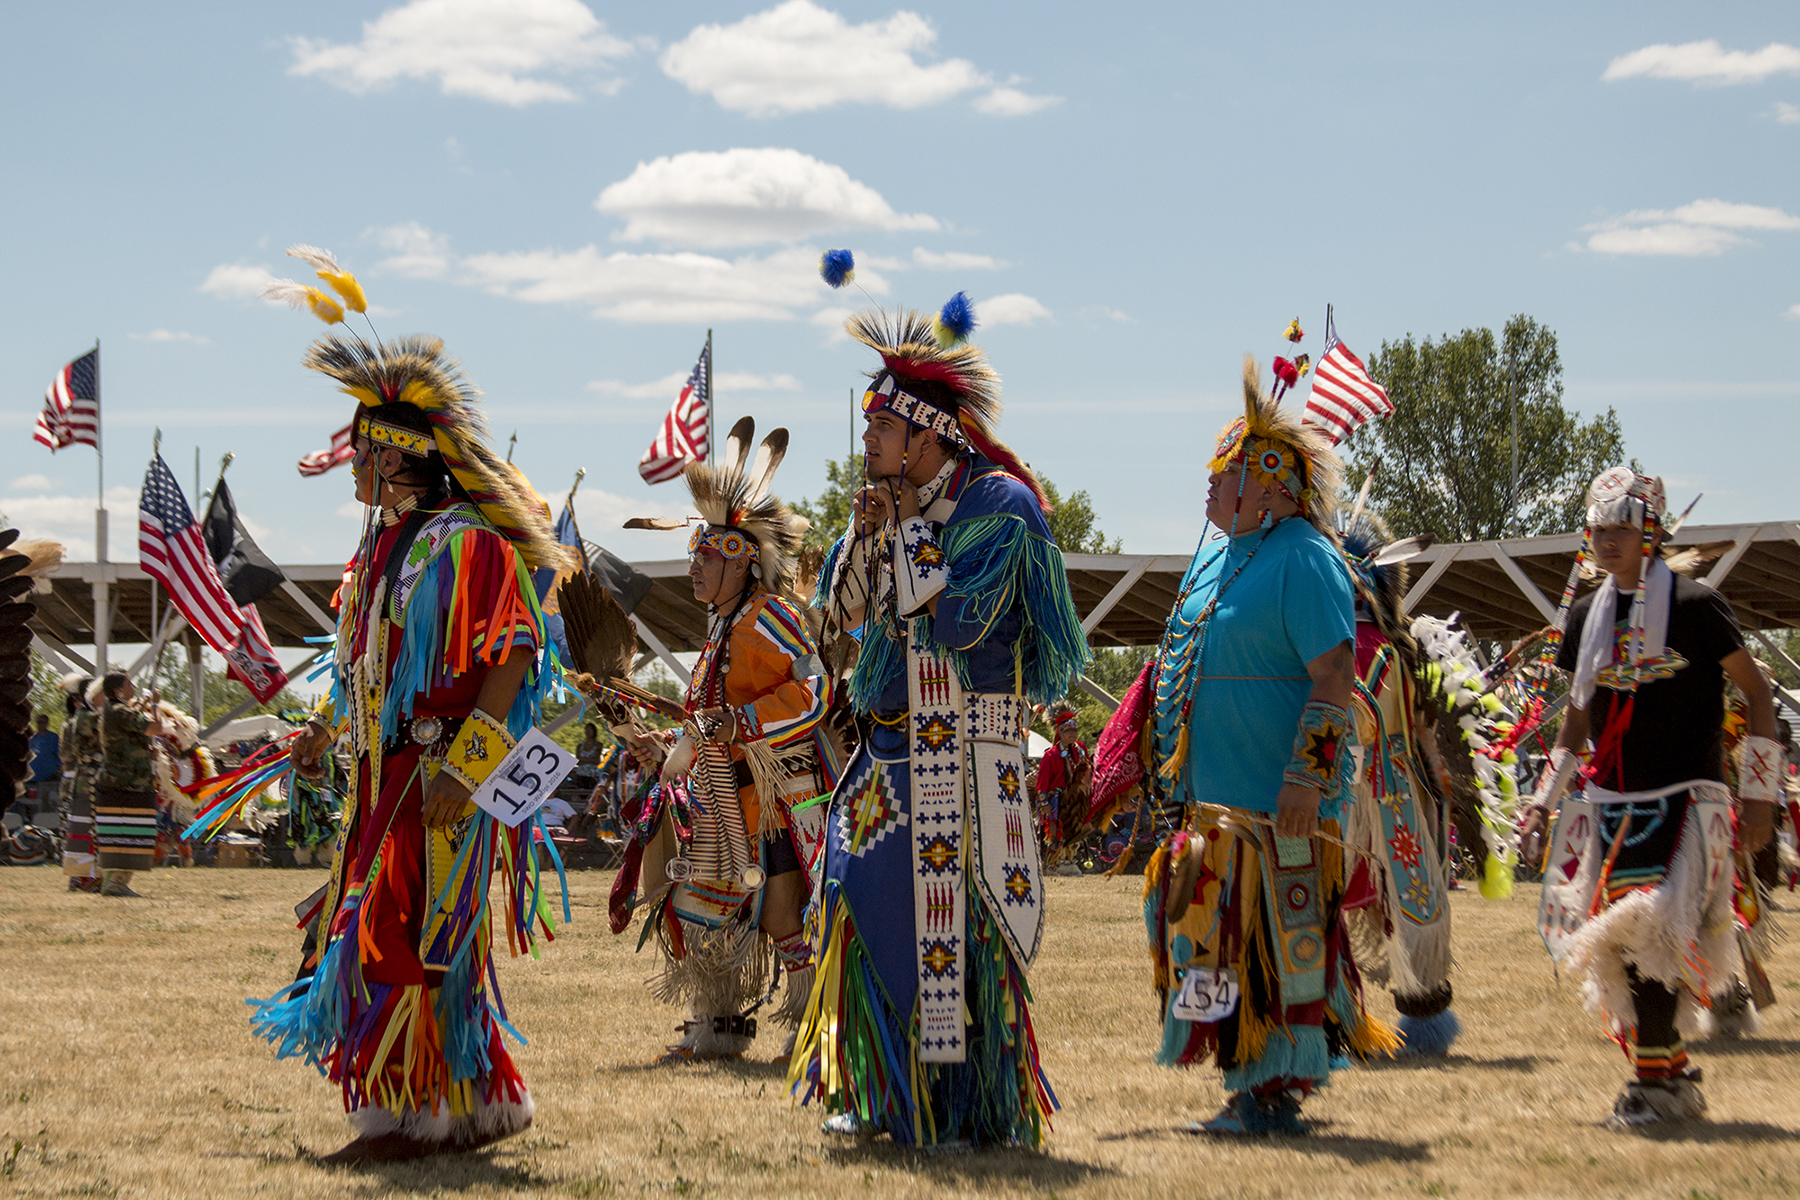 The Sisseton Wahpeton Oyate tribe conducted its 149th annual Wacipi, also known as a powwow, during the Fourth of July weekend in South Dakota. It is the second-oldest Wacipi in the nation. It was once illegal for tribes to practice their religious ceremonies, so they passed off their cultural celebration as a Fourth of July festivity. (Mike Lakusiak/News21)